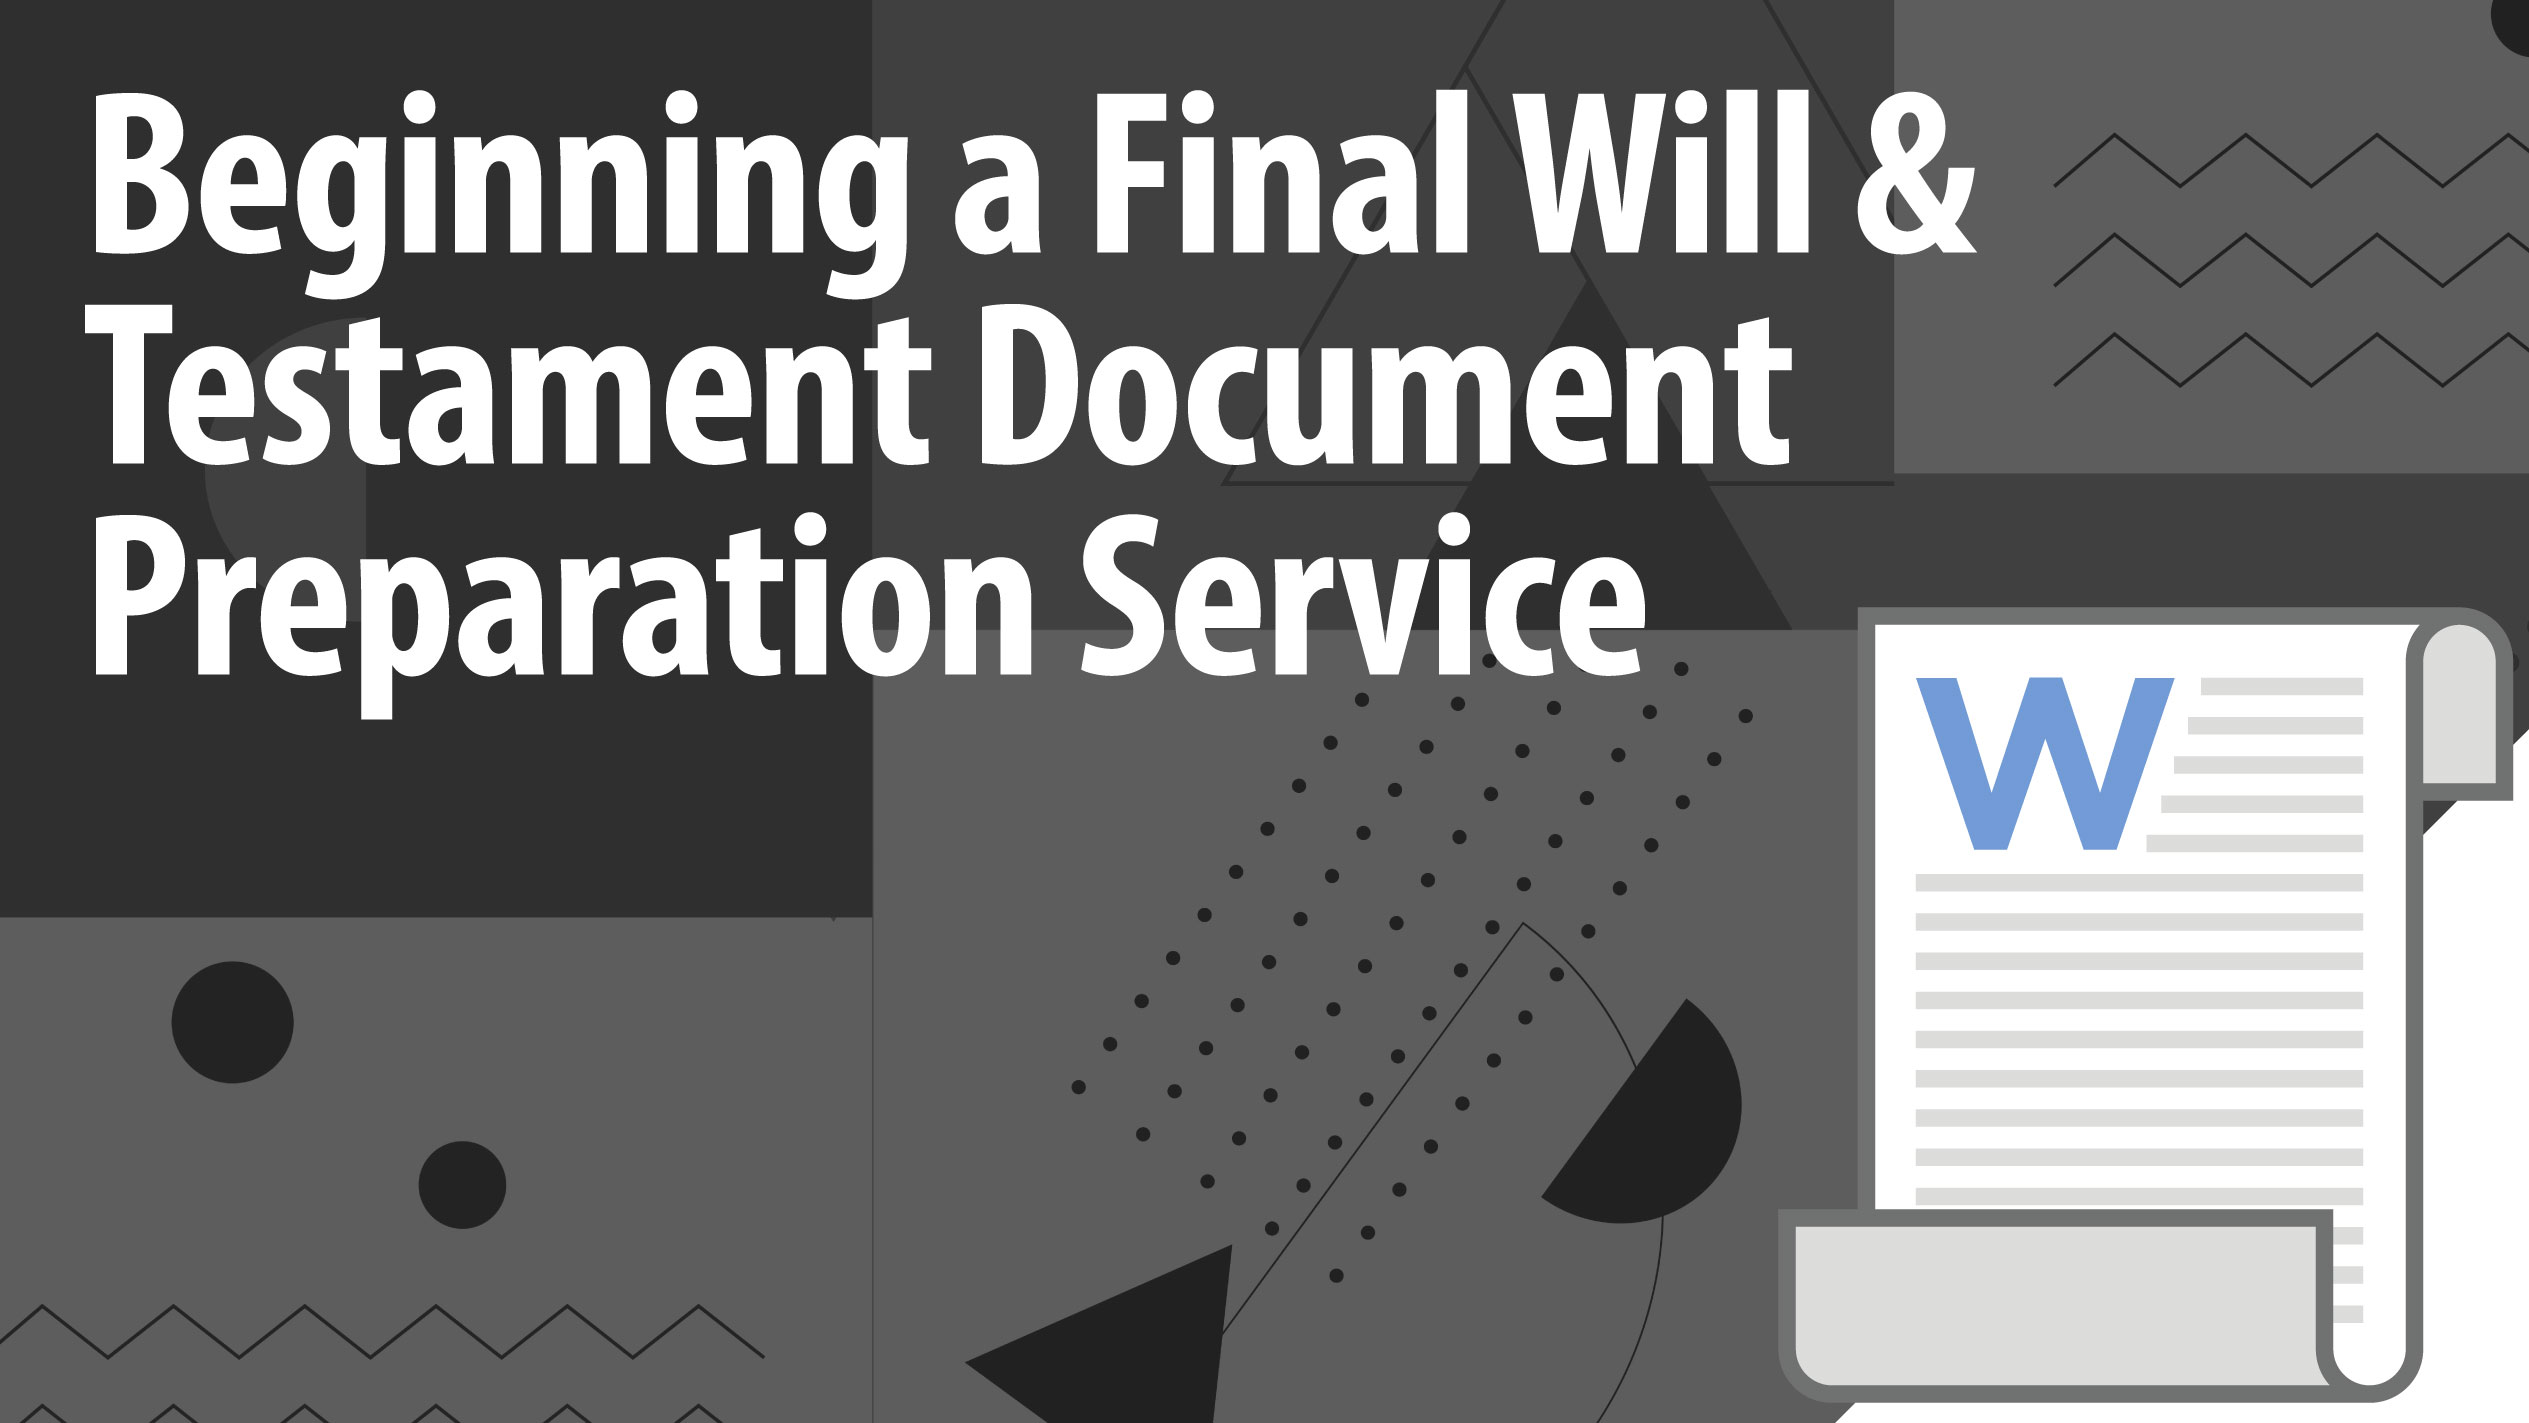 Beginning a Final Will and Testament Document Preparation Service